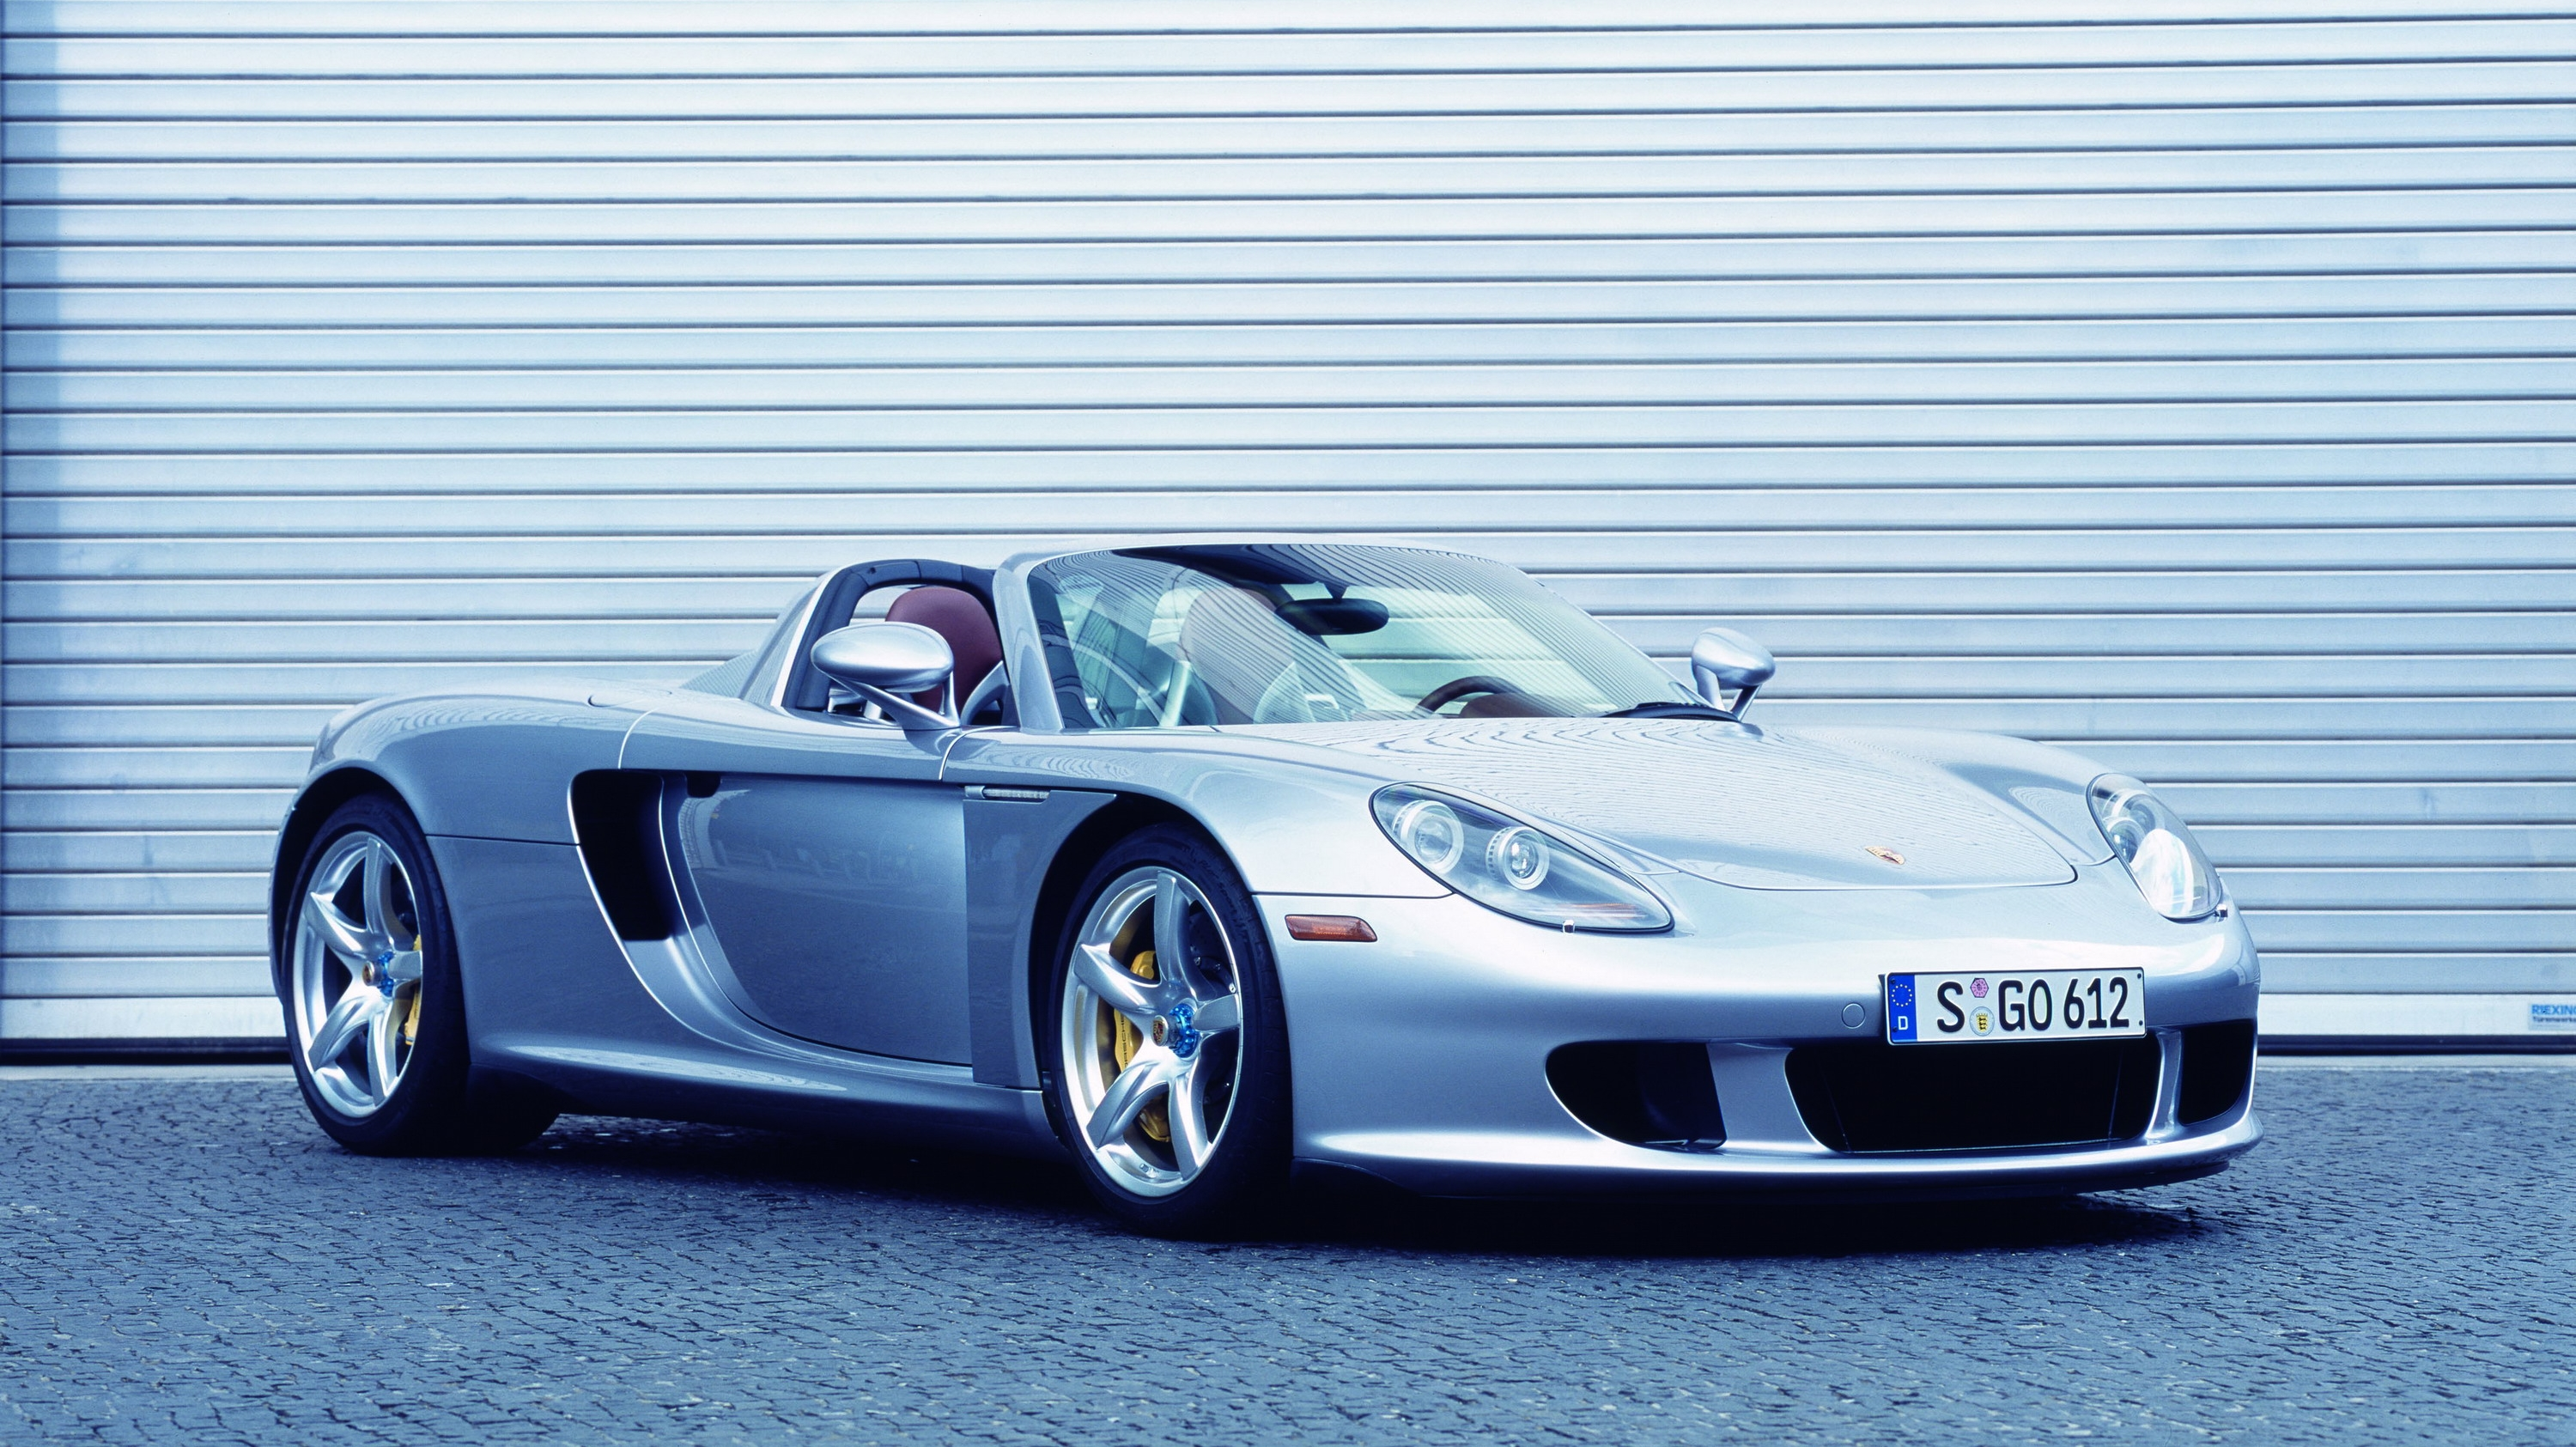 2004 2007 porsche carrera gt review top speed. Black Bedroom Furniture Sets. Home Design Ideas